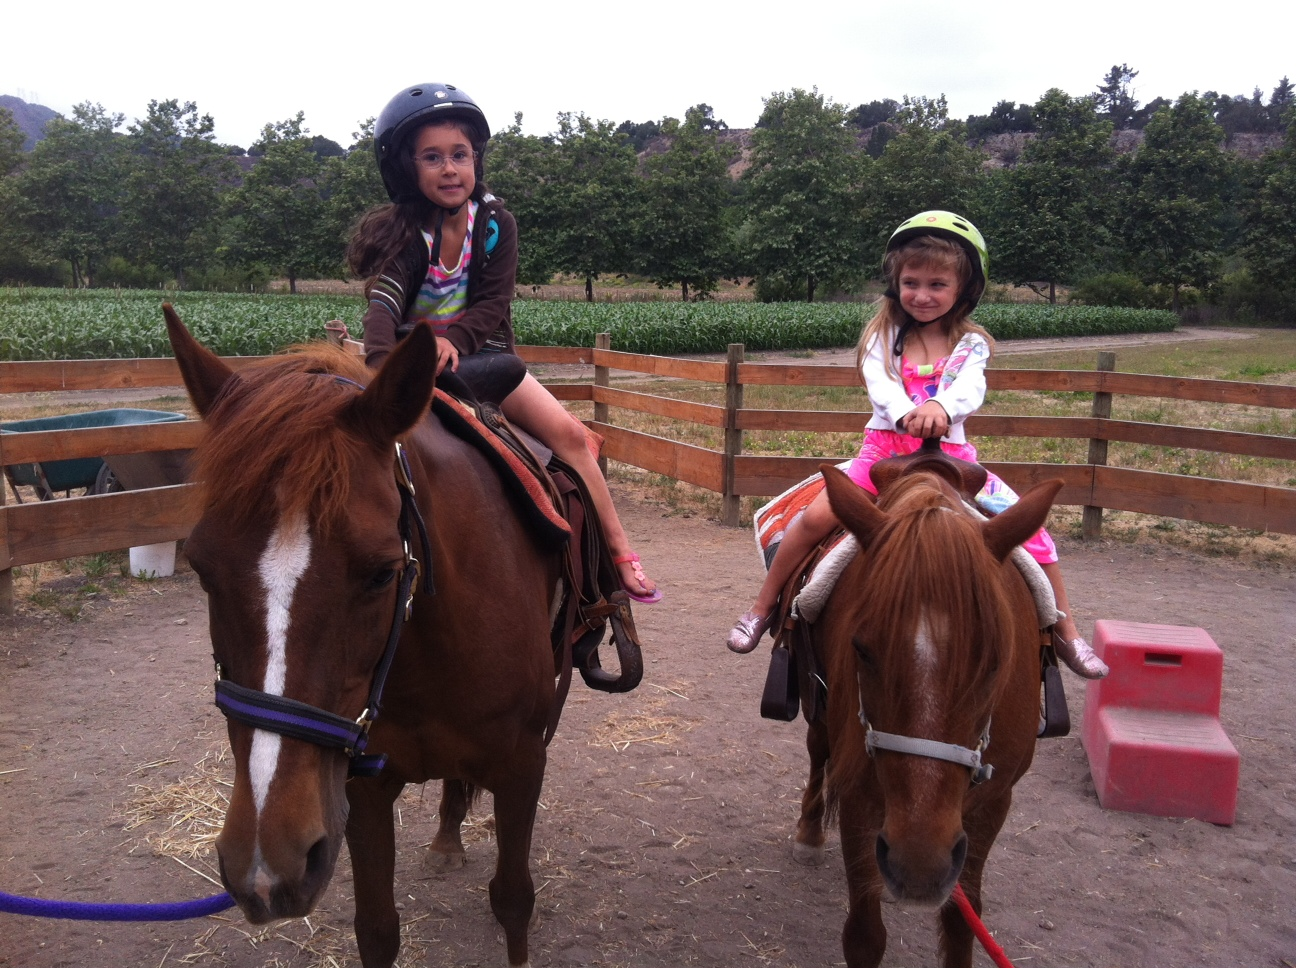 I asked my niece yesterday what her favorite thing to do is and she exclaimed pony rides! =)